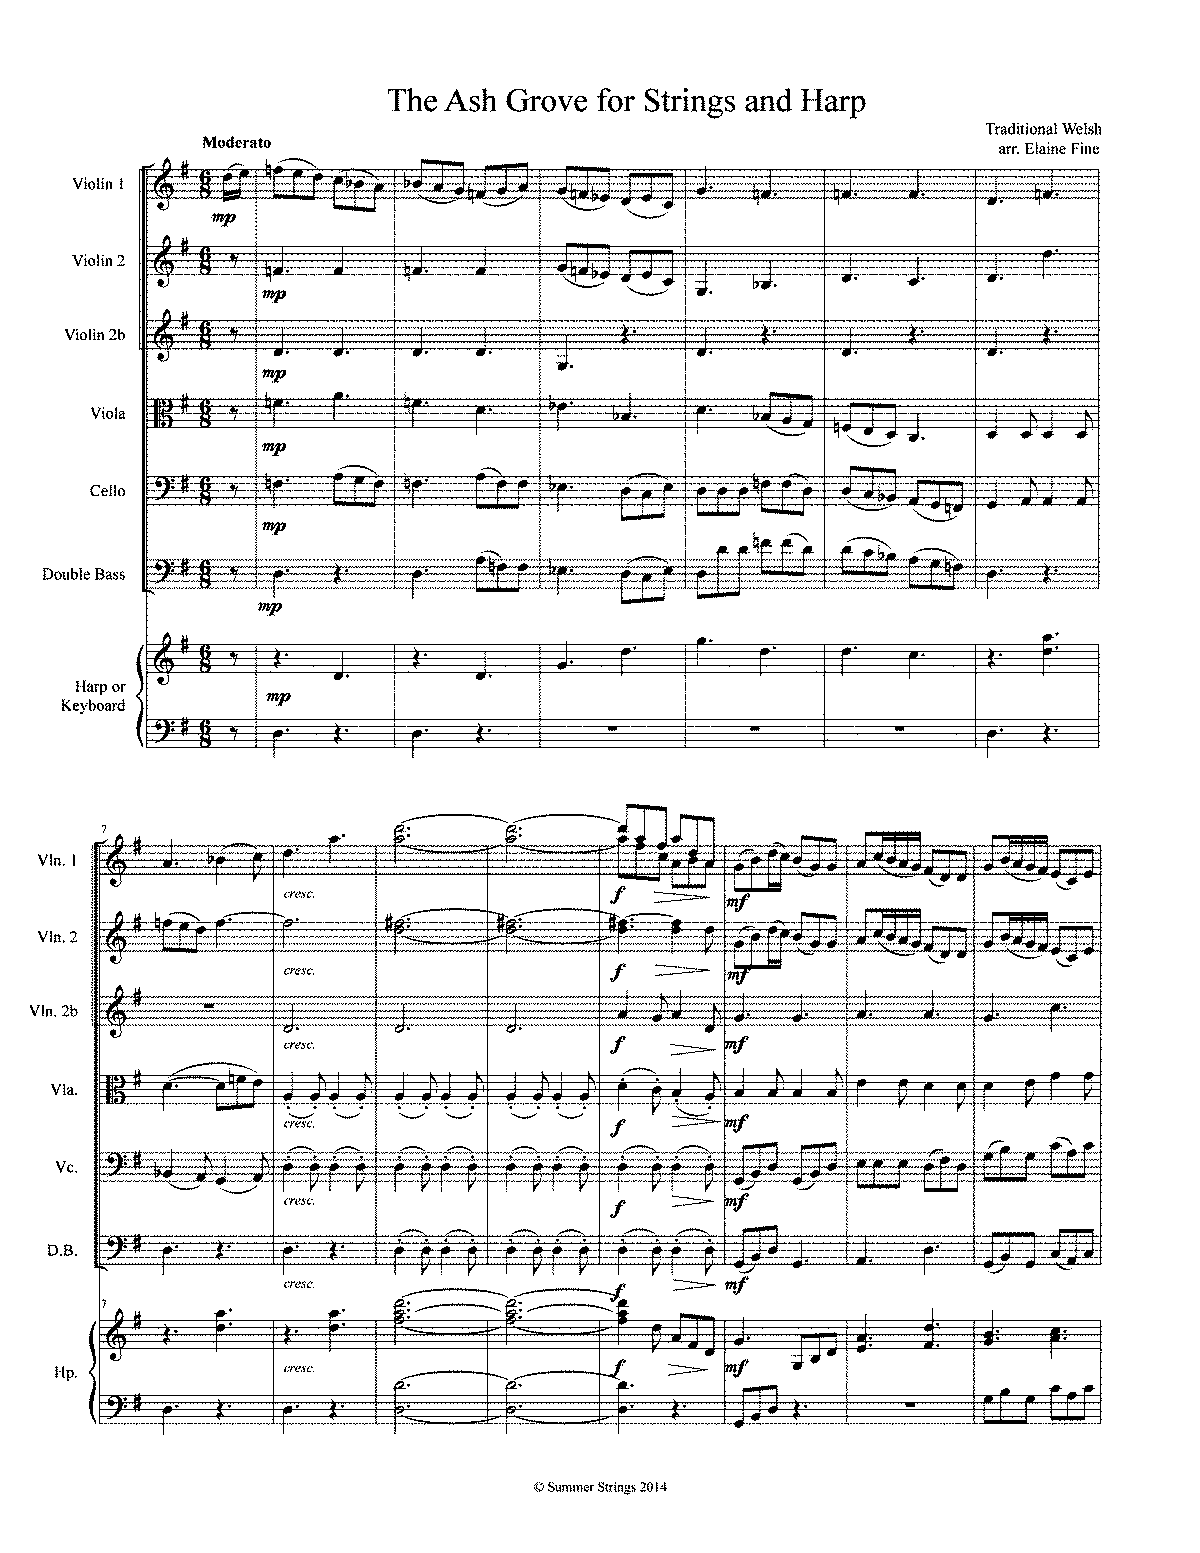 PMLP497376-The Ash Grove for Strings Score and Parts.pdf